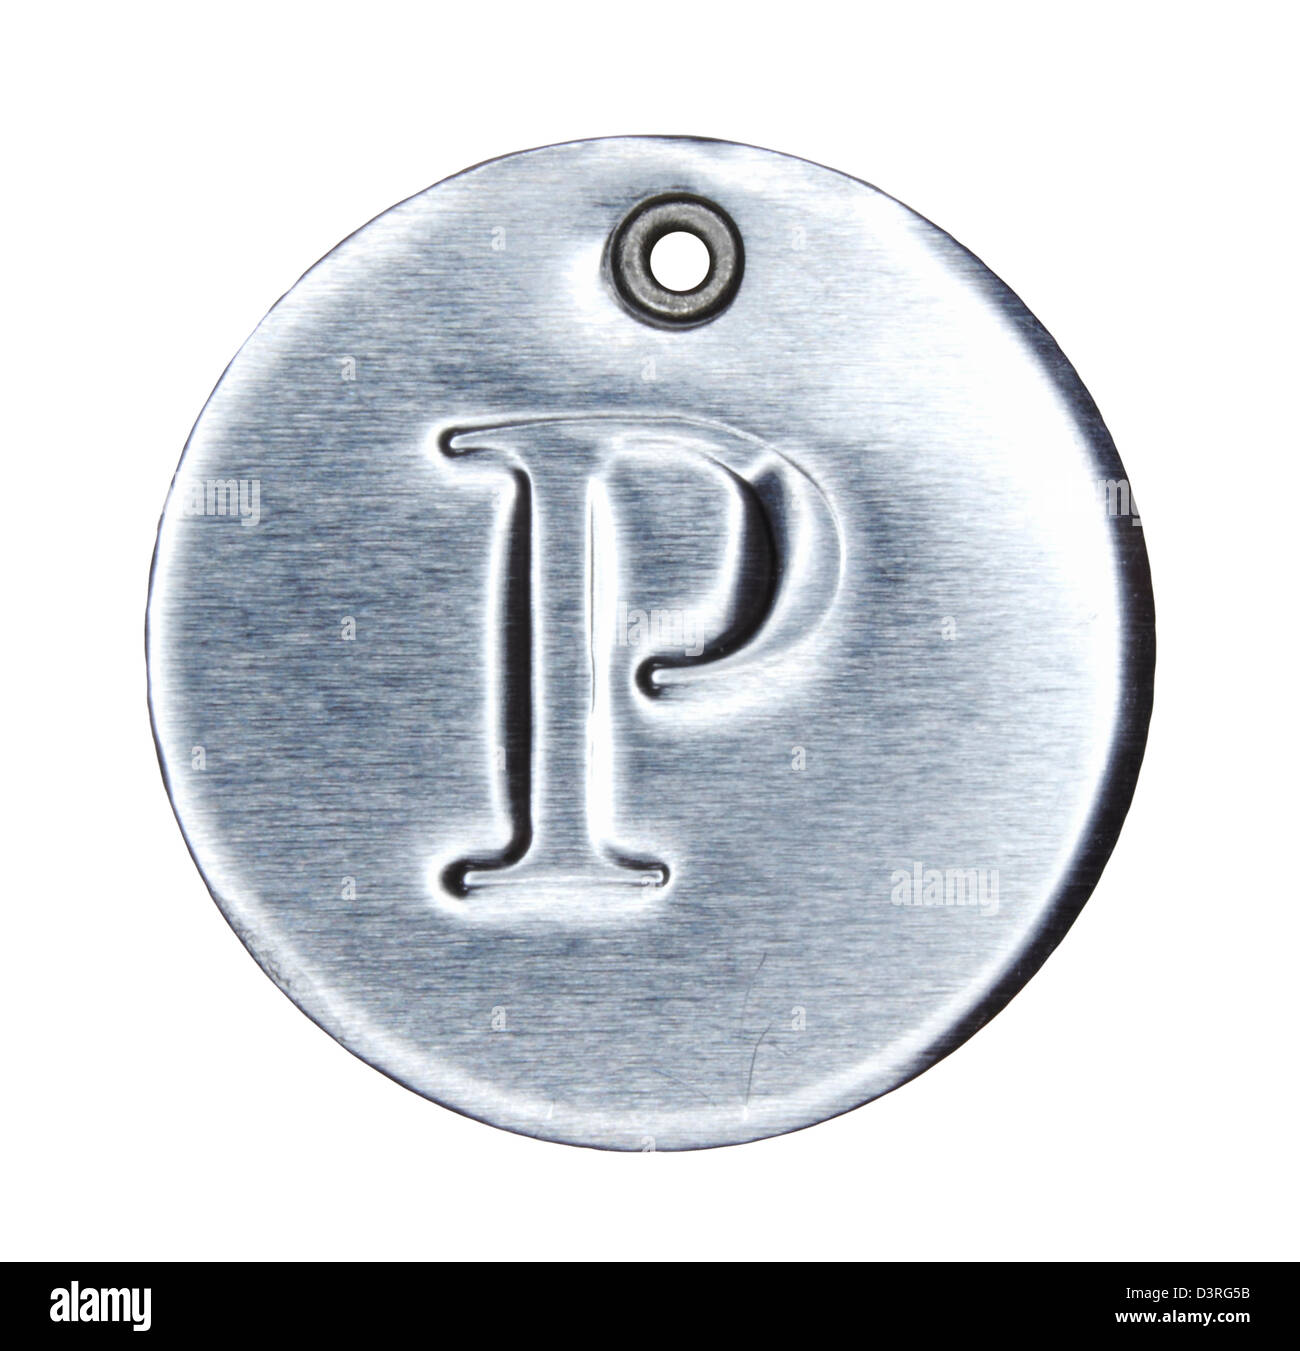 Brushed metal letter of the alphabet P - Stock Image